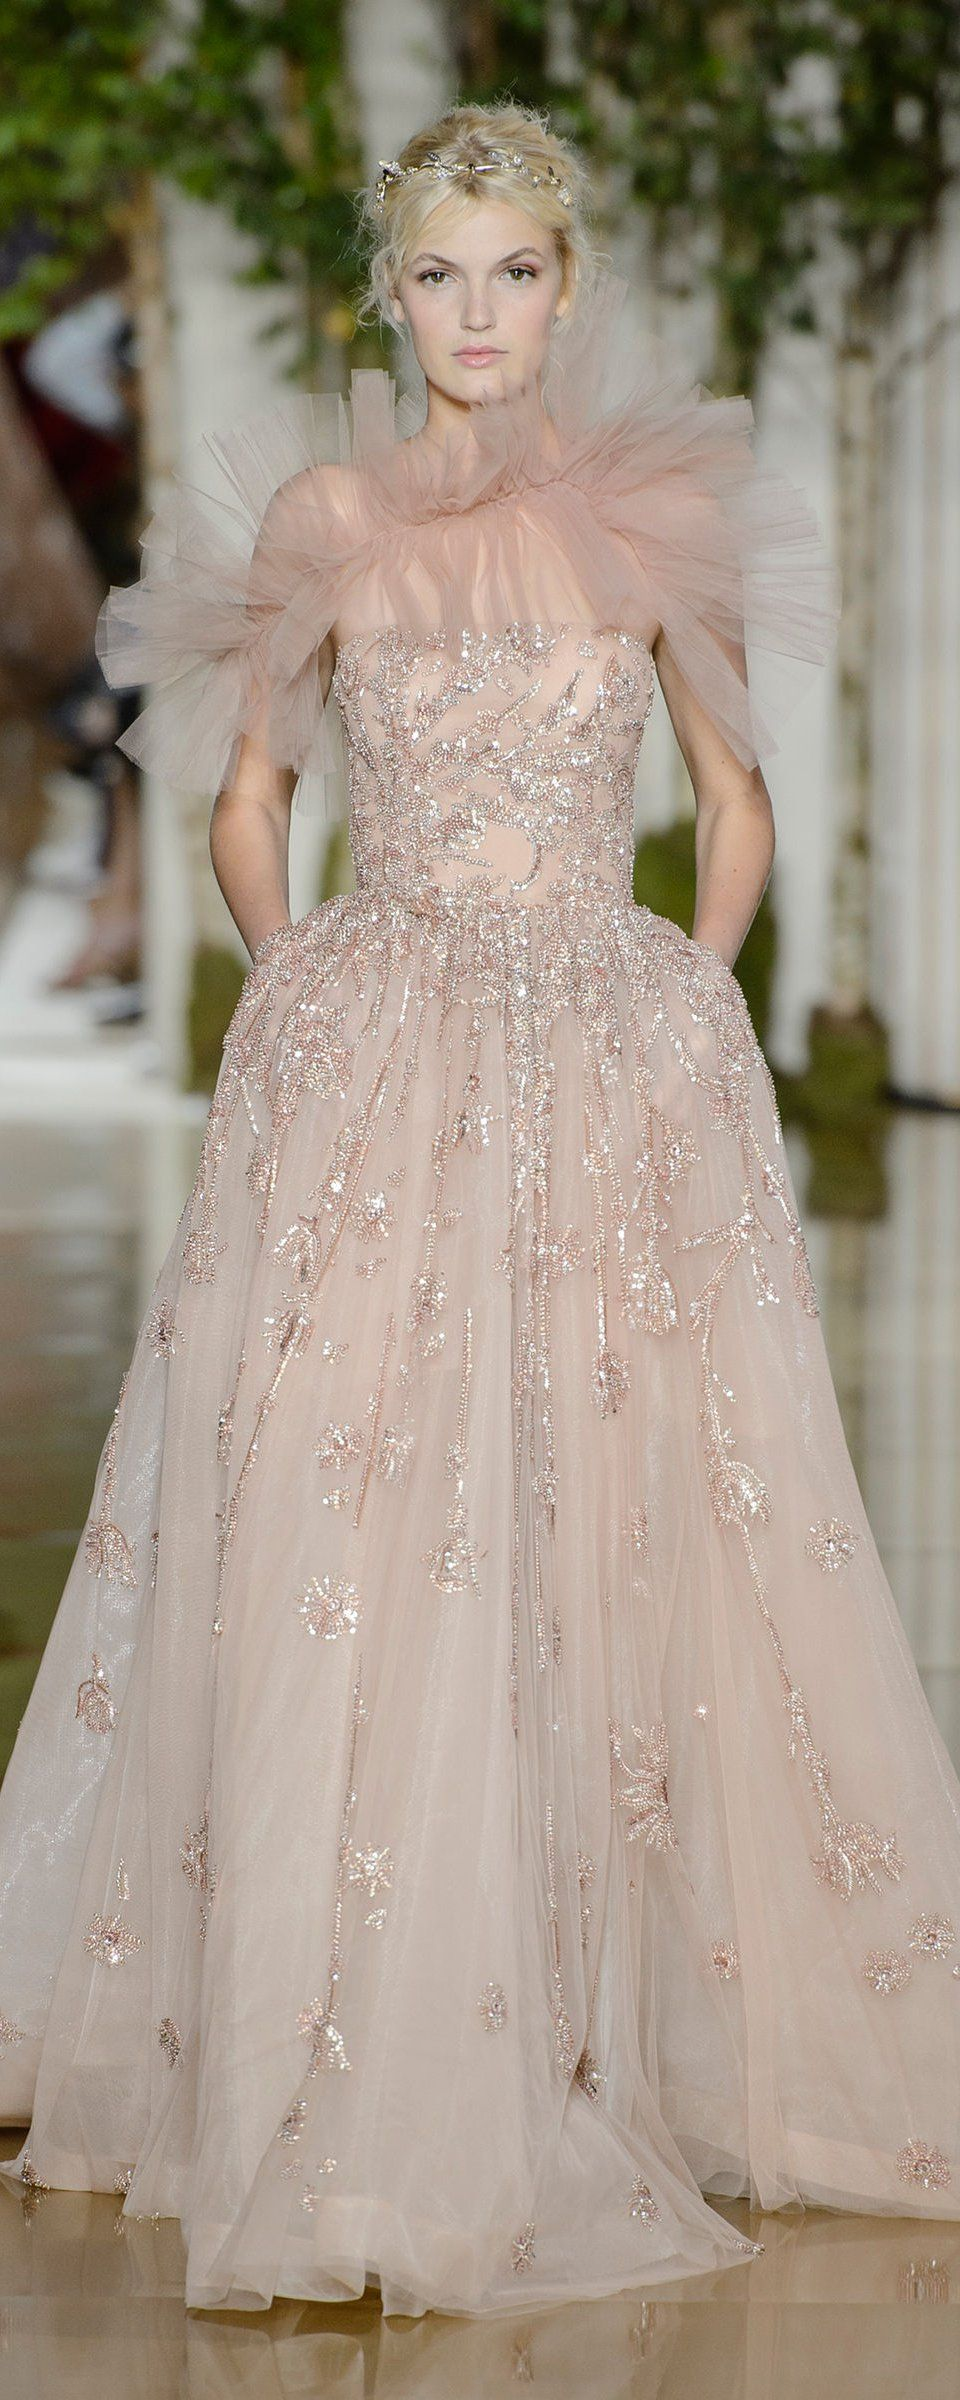 Zuhair murad automnehiver haute couture in dress